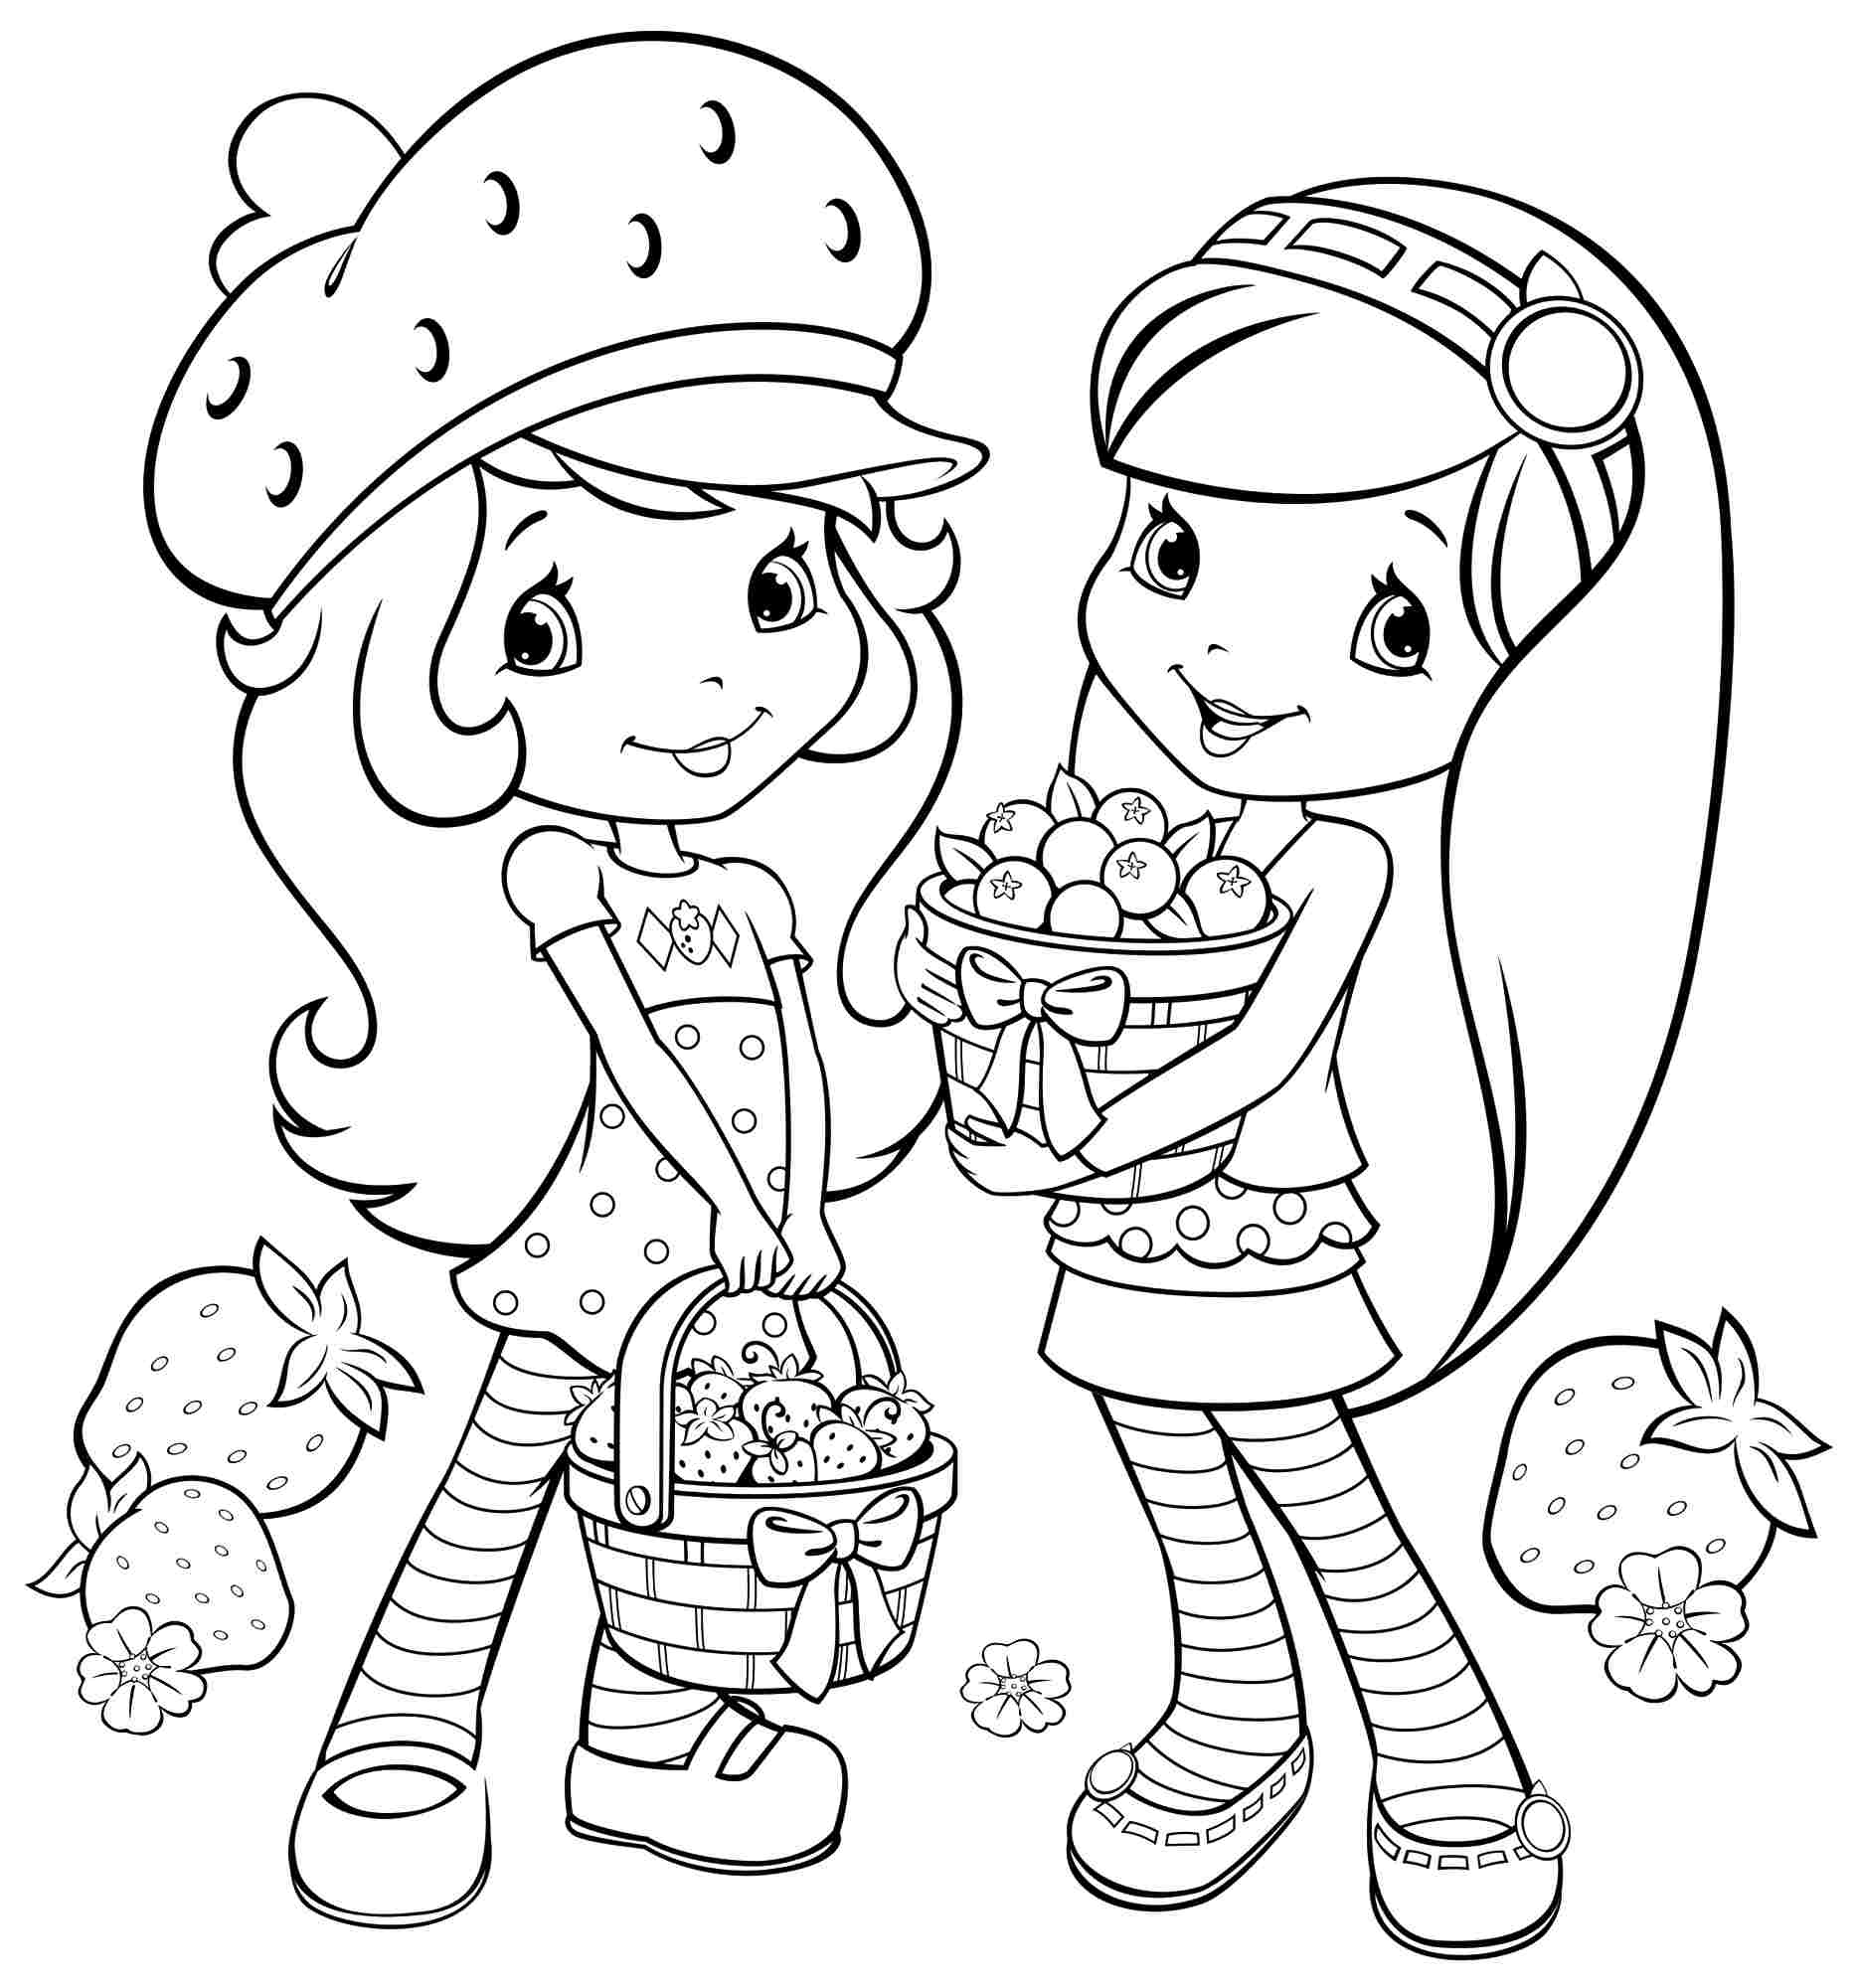 Friends Cartoon Drawing at GetDrawings.com | Free for personal use ...